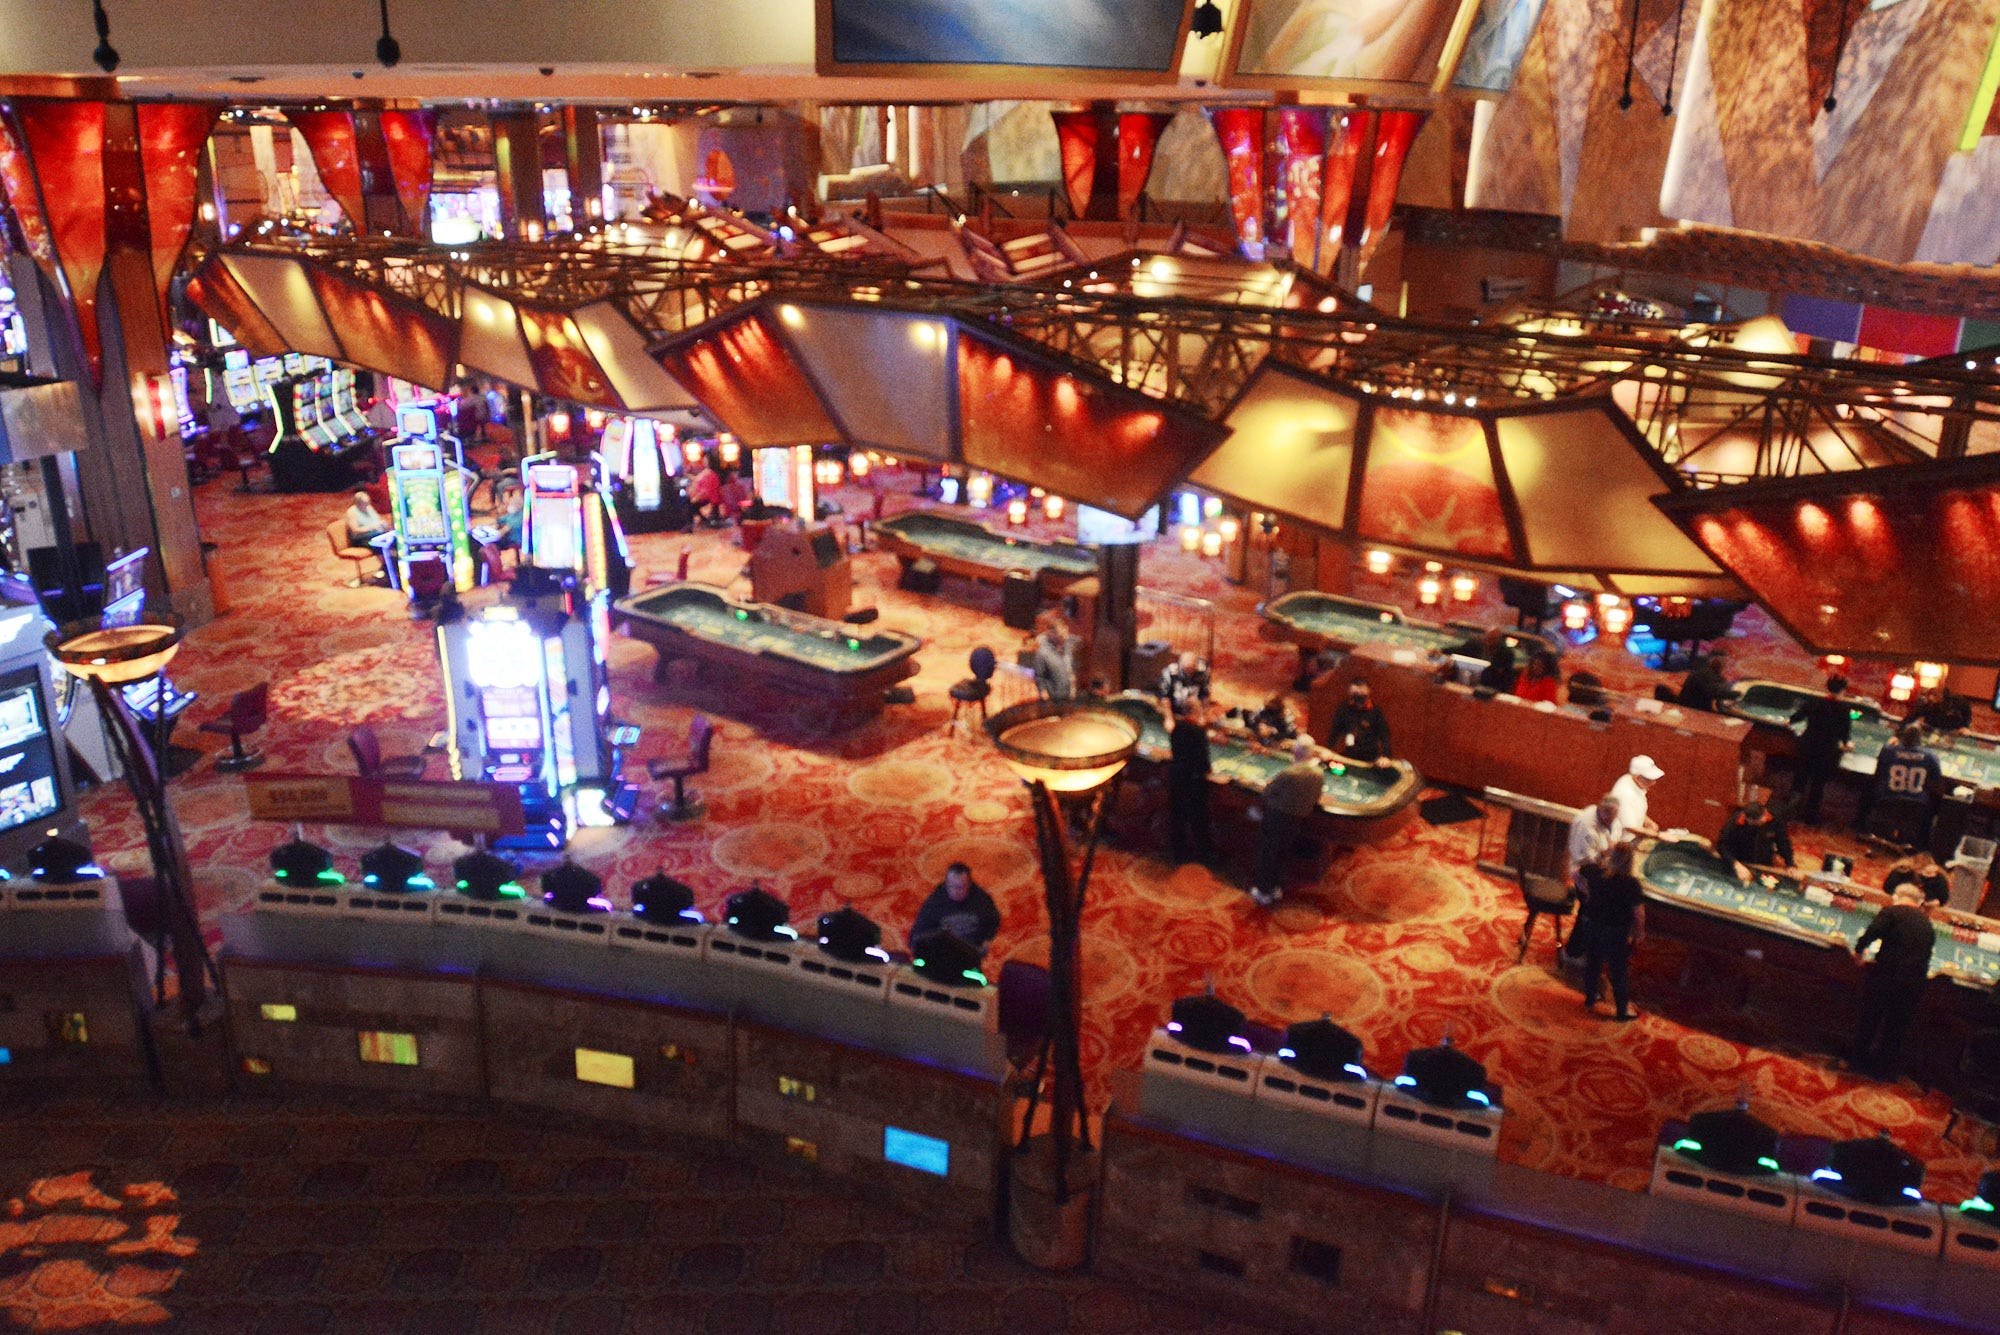 The Casino of the Sky gaming area at Mohegan Sun.